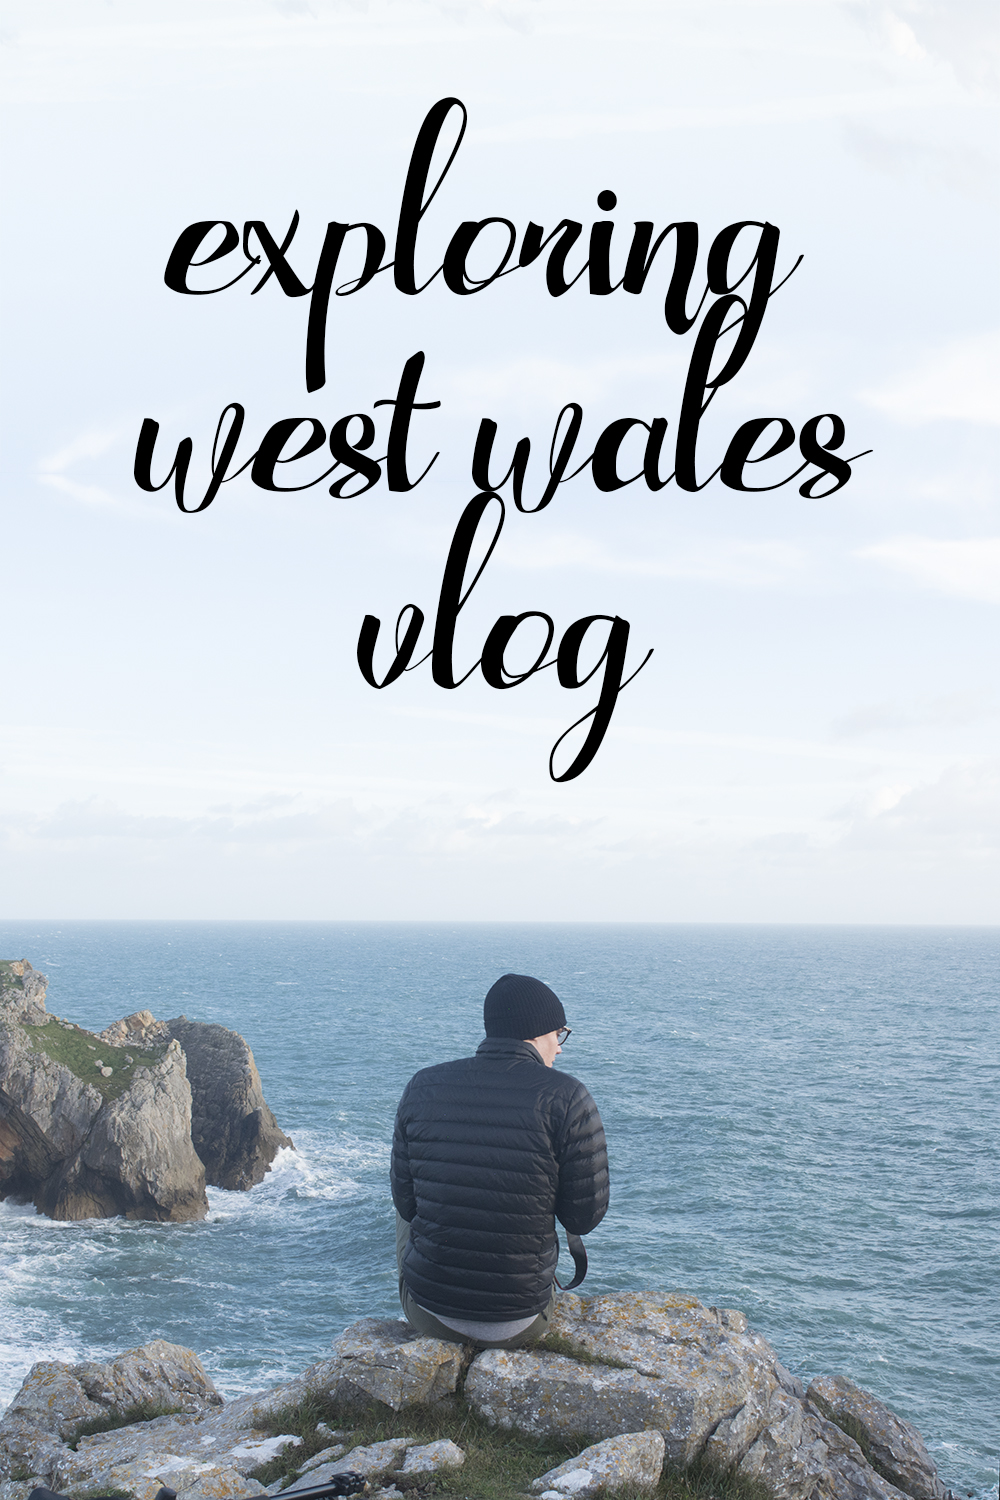 The West Wales Vlog Video exploring pembrokeshire coast sitting on clifftop